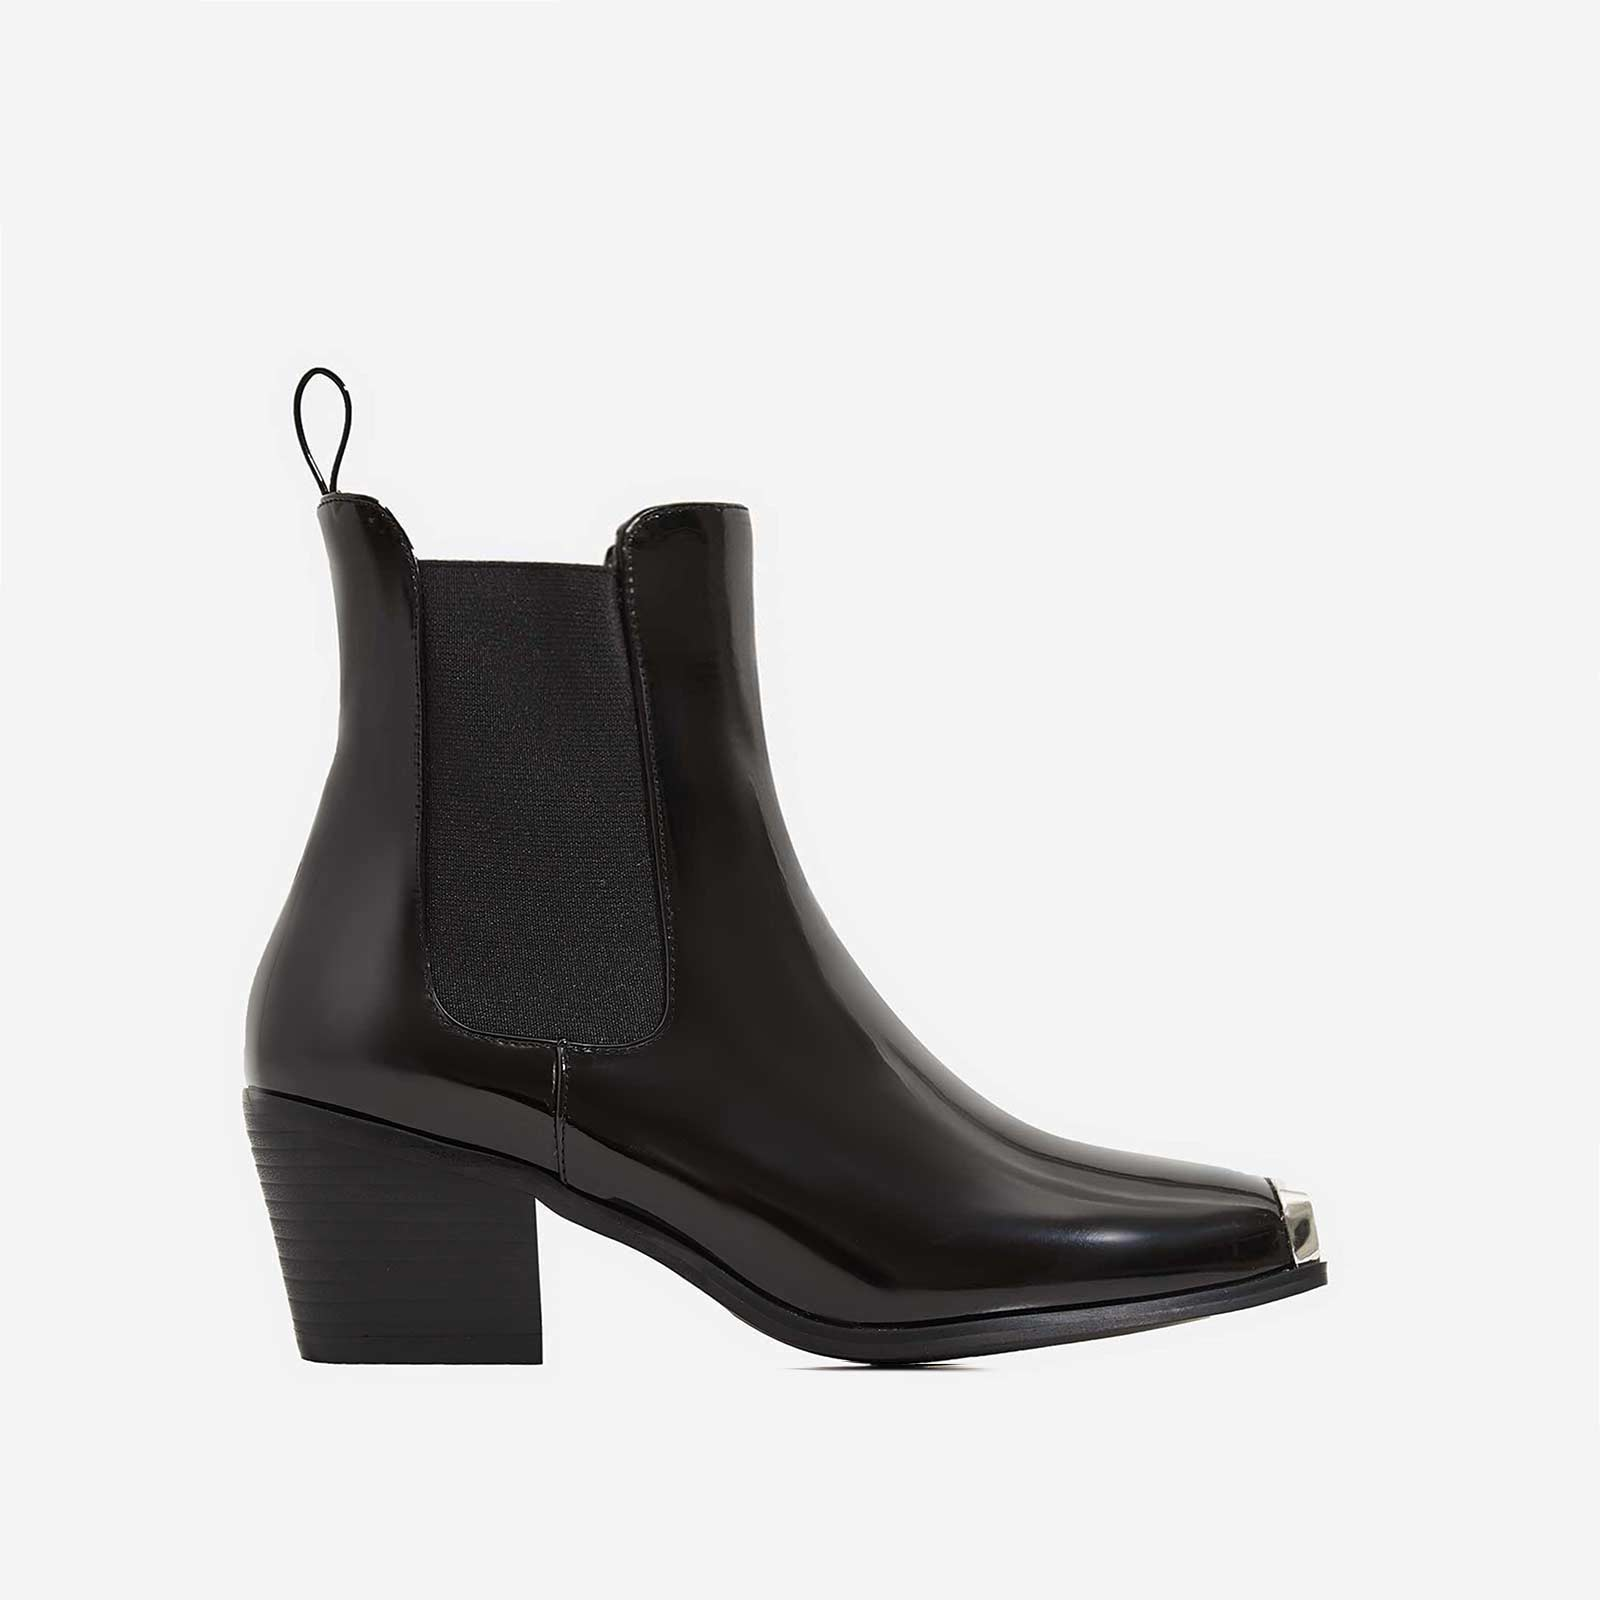 Darcy Toe Cap Western Ankle Boot In Black Patent